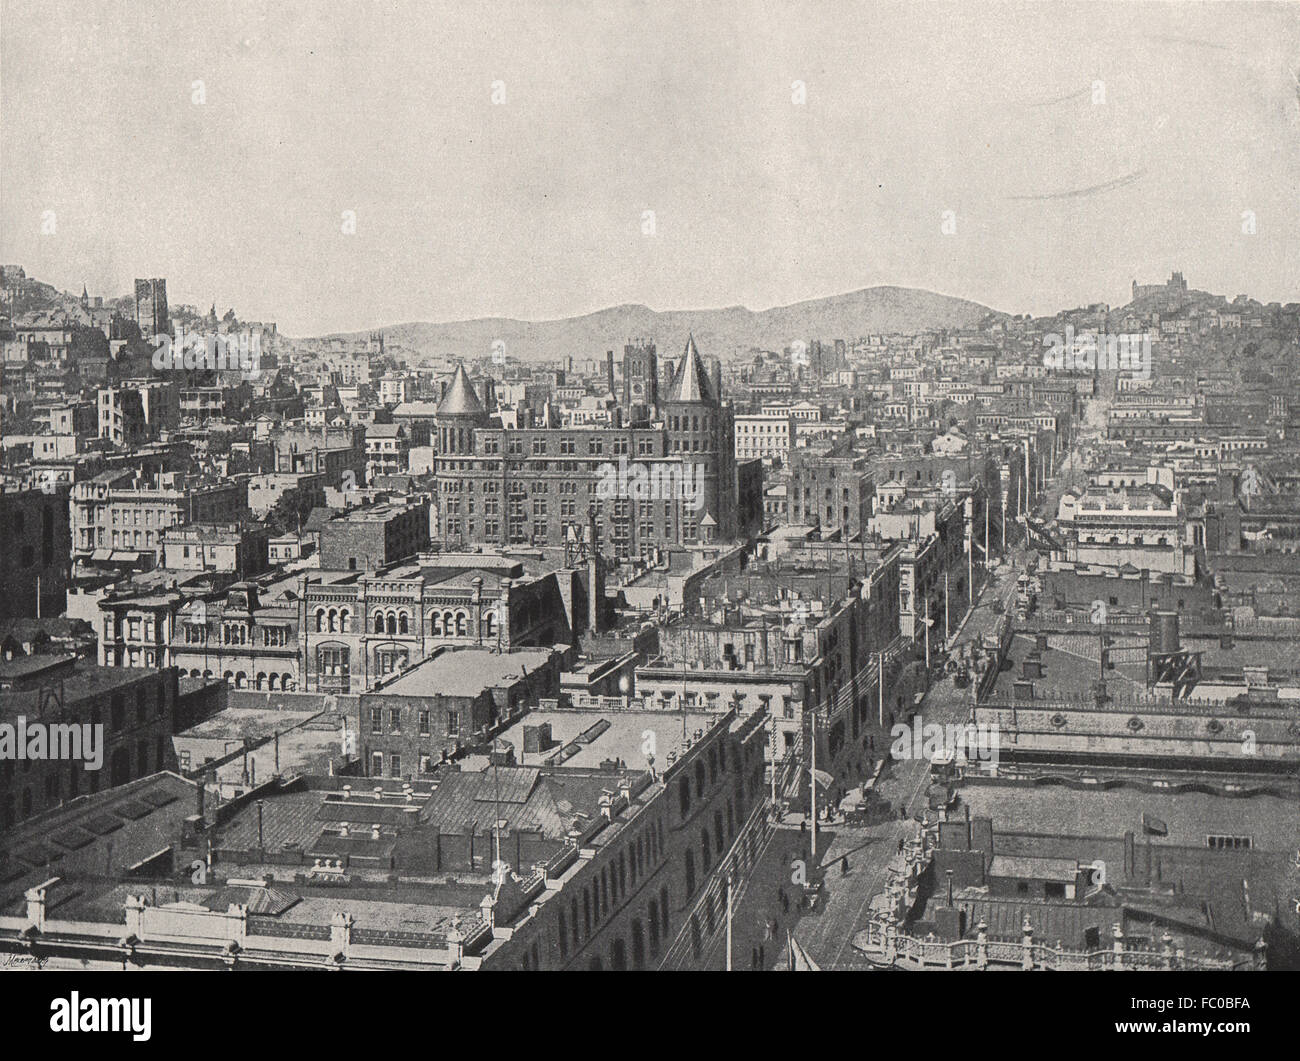 SAN FRANCISCO. Bird's-eye view from the Chronicle Building. California, 1895 - Stock Image